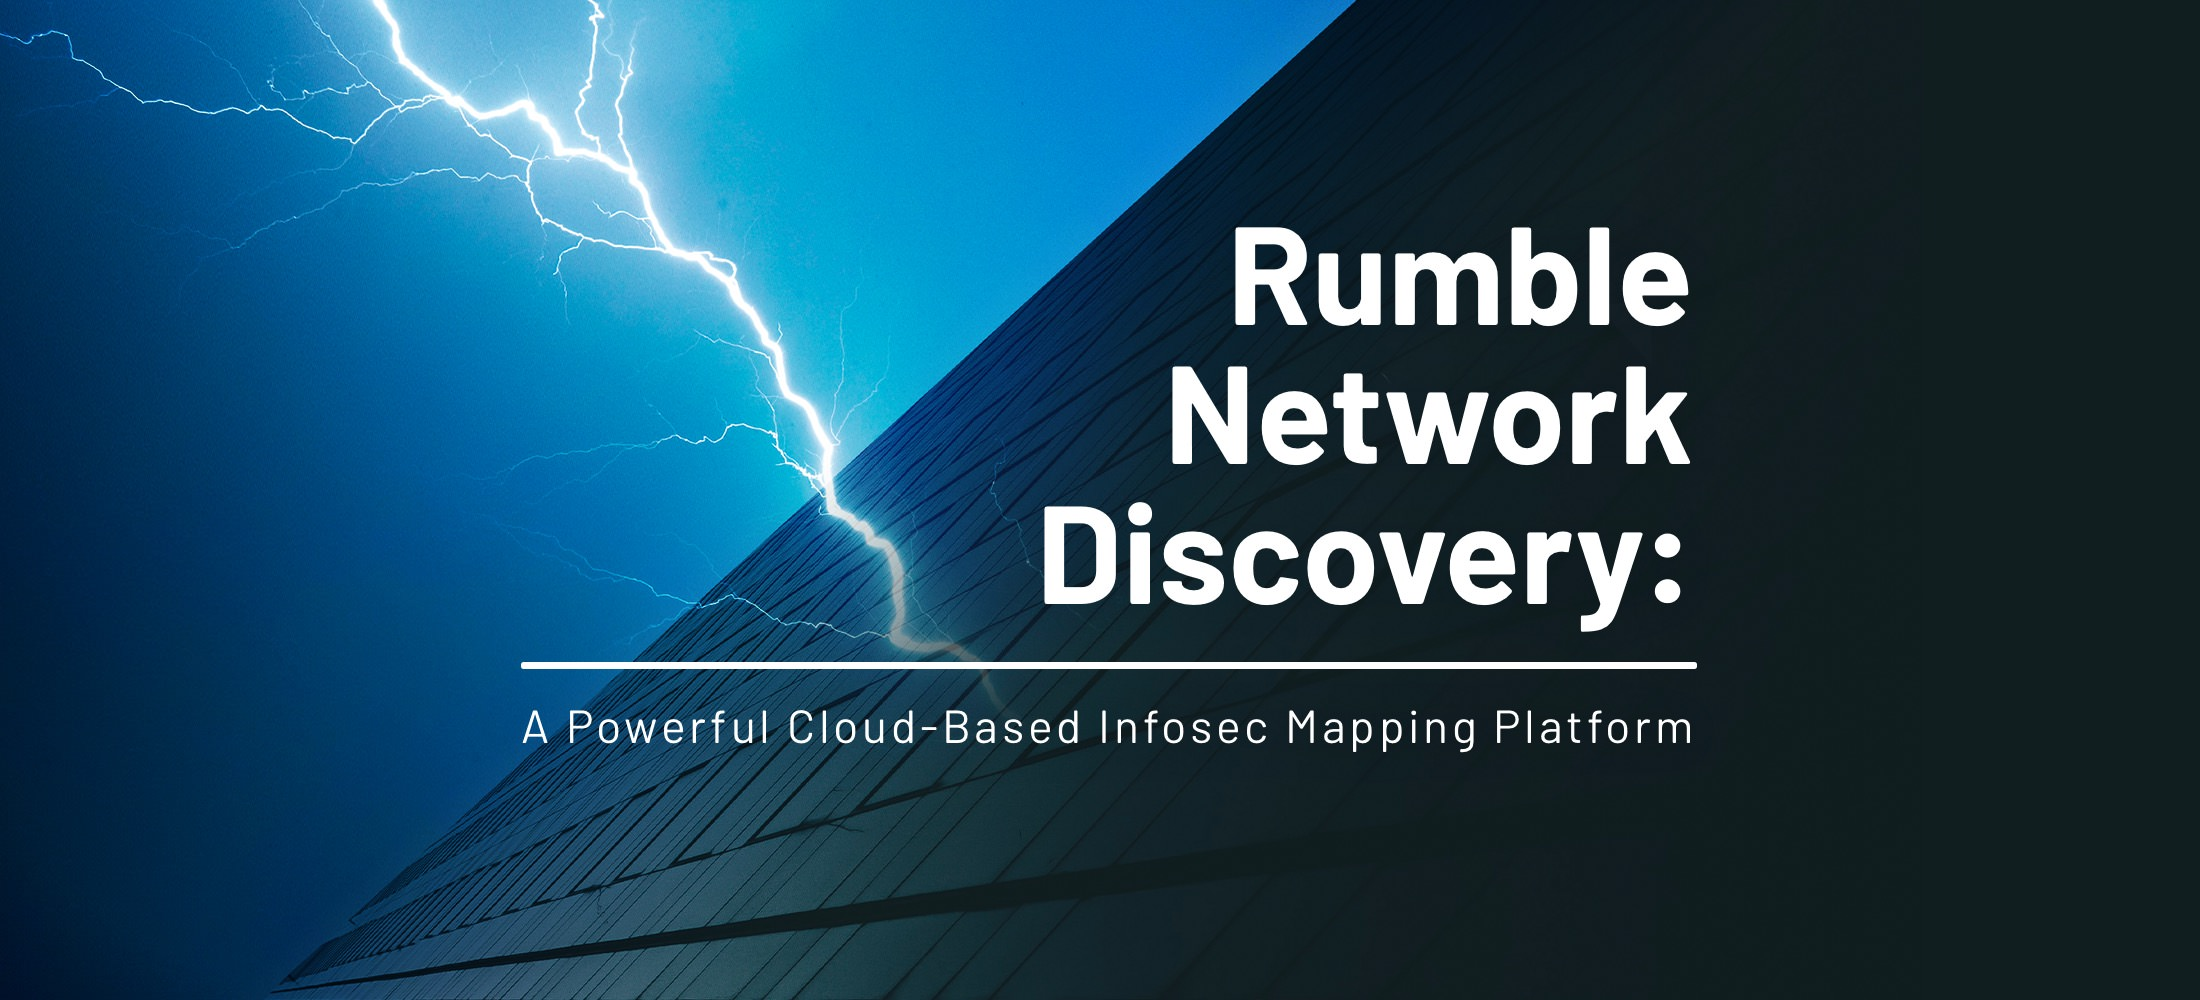 Rumble Network Discovery: A Powerful Cloud-Based Infosec Mapping Platform